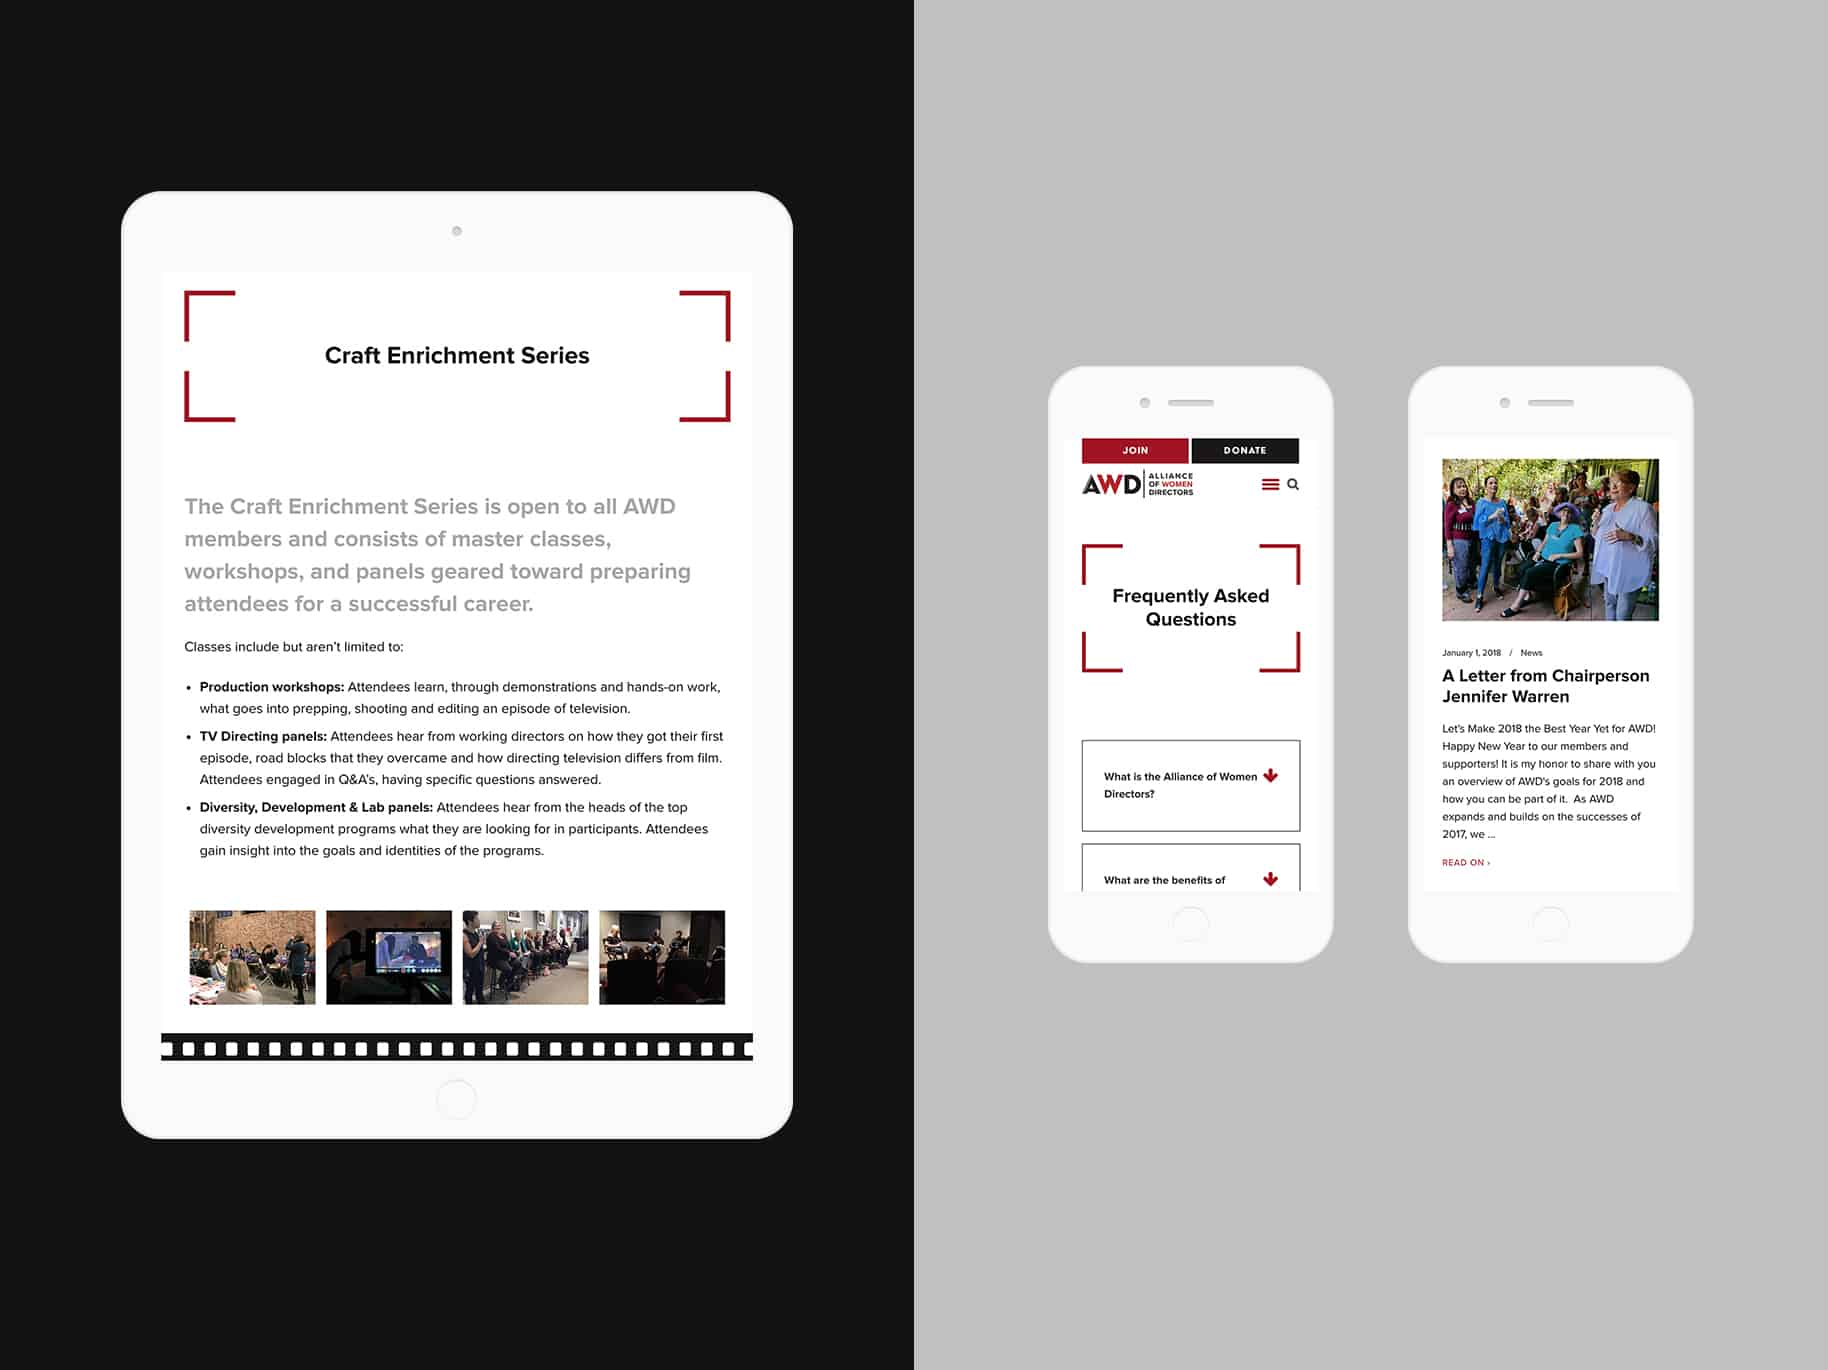 screenshots of mobile web pages